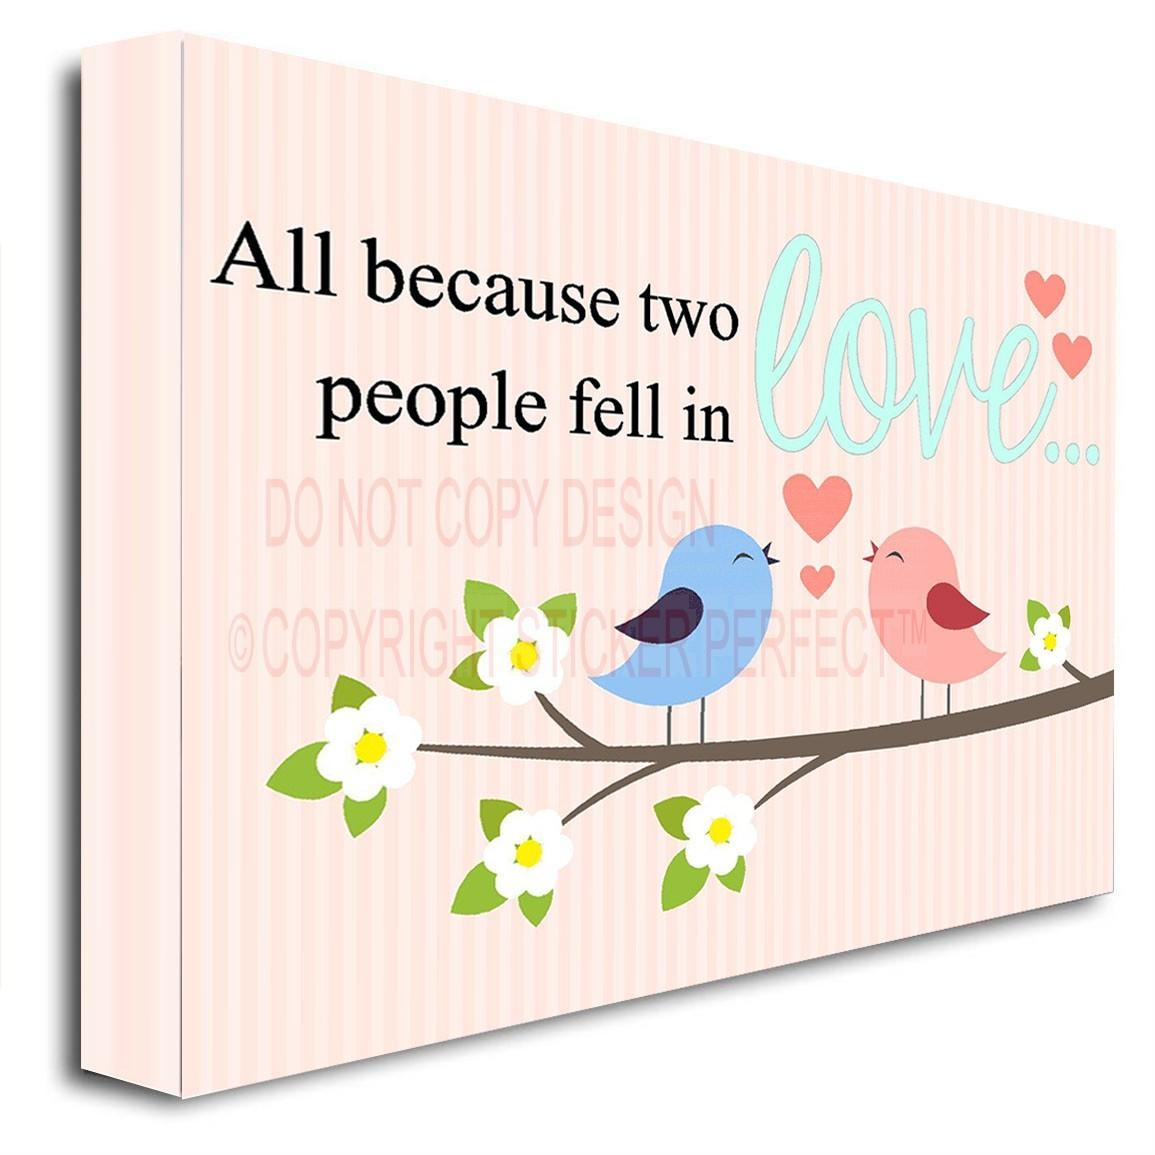 Framed Canvas Print All Because Two People Fell In Love Printed Pertaining To Framed Wall Art Sayings (Image 7 of 20)